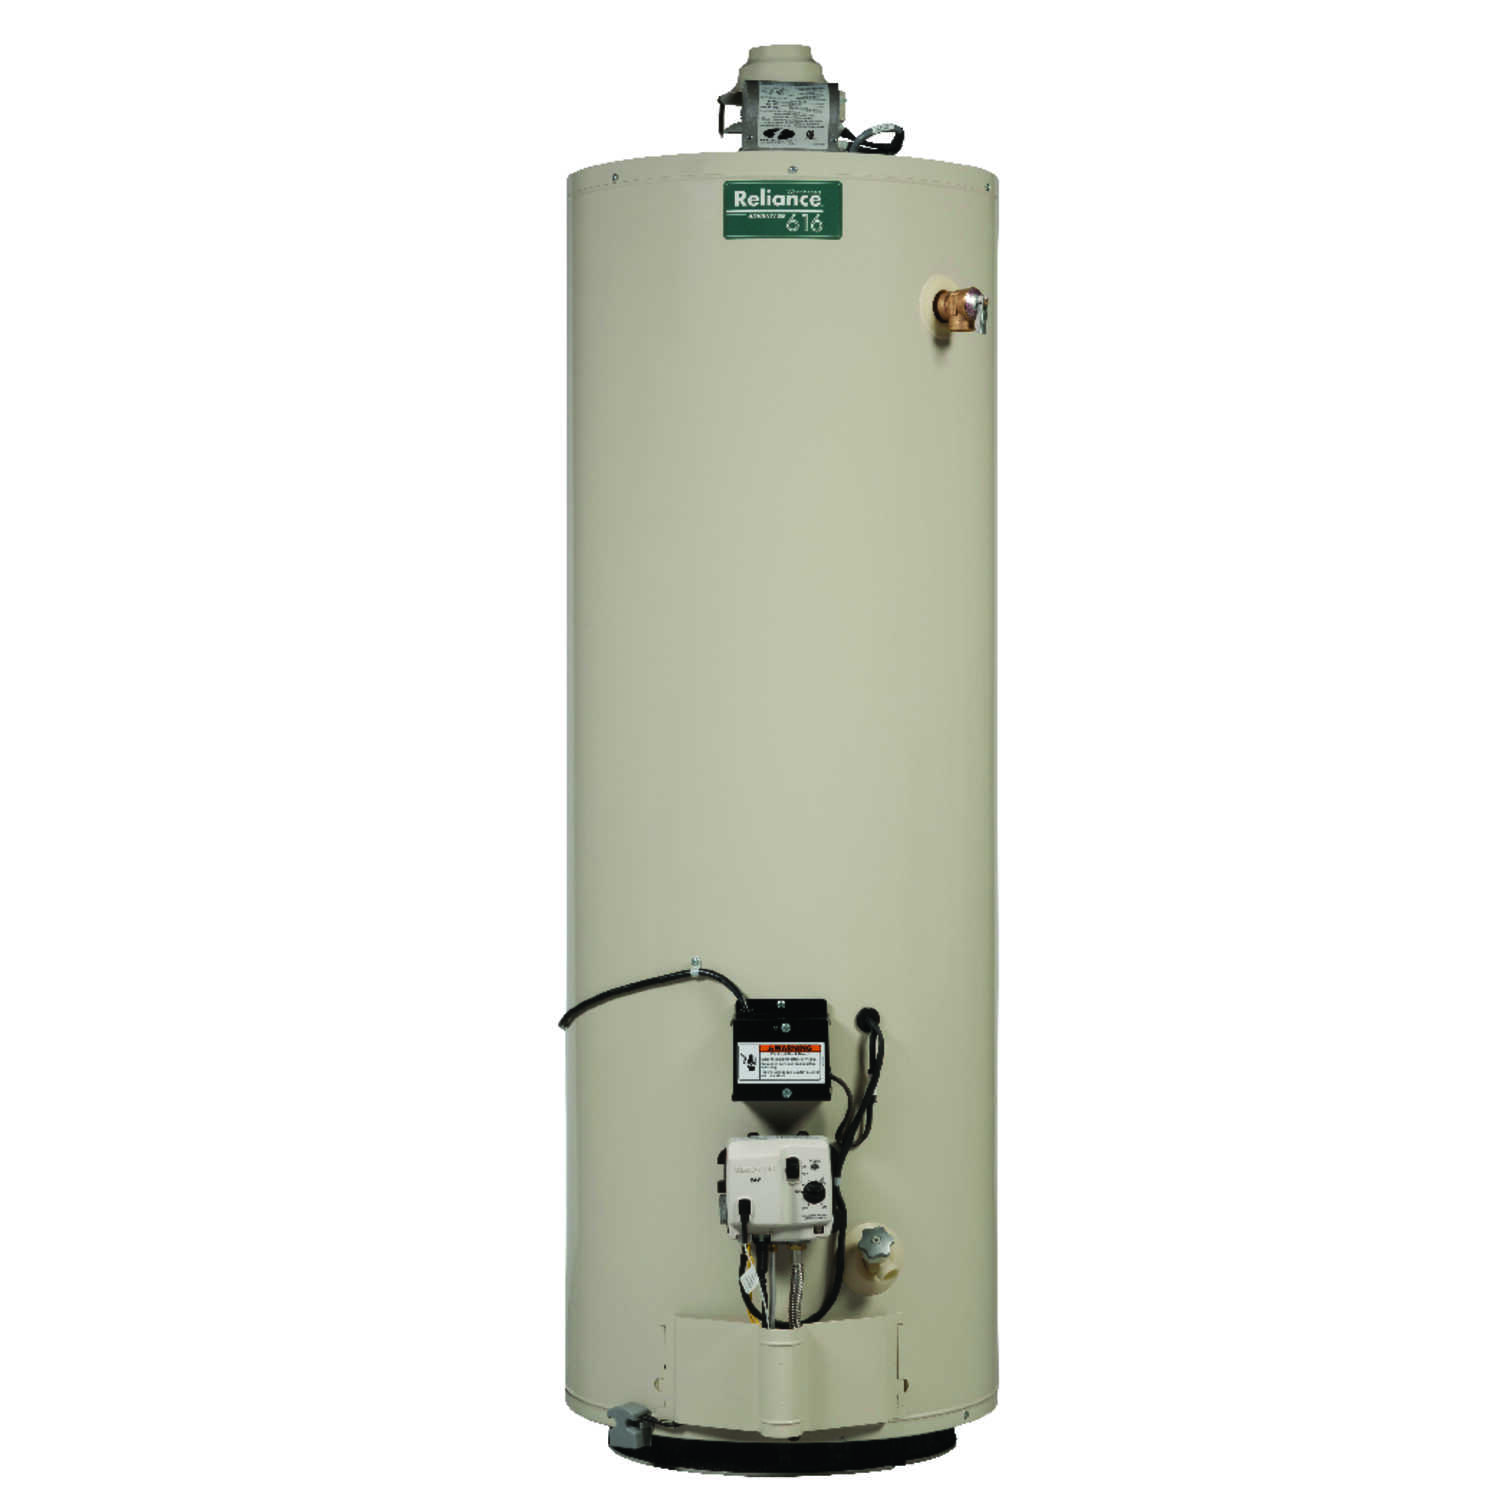 Reliance  Water Heater  Natural Gas  40 gal. 64-1/4 in. H x 20 in. L x 20 in. W